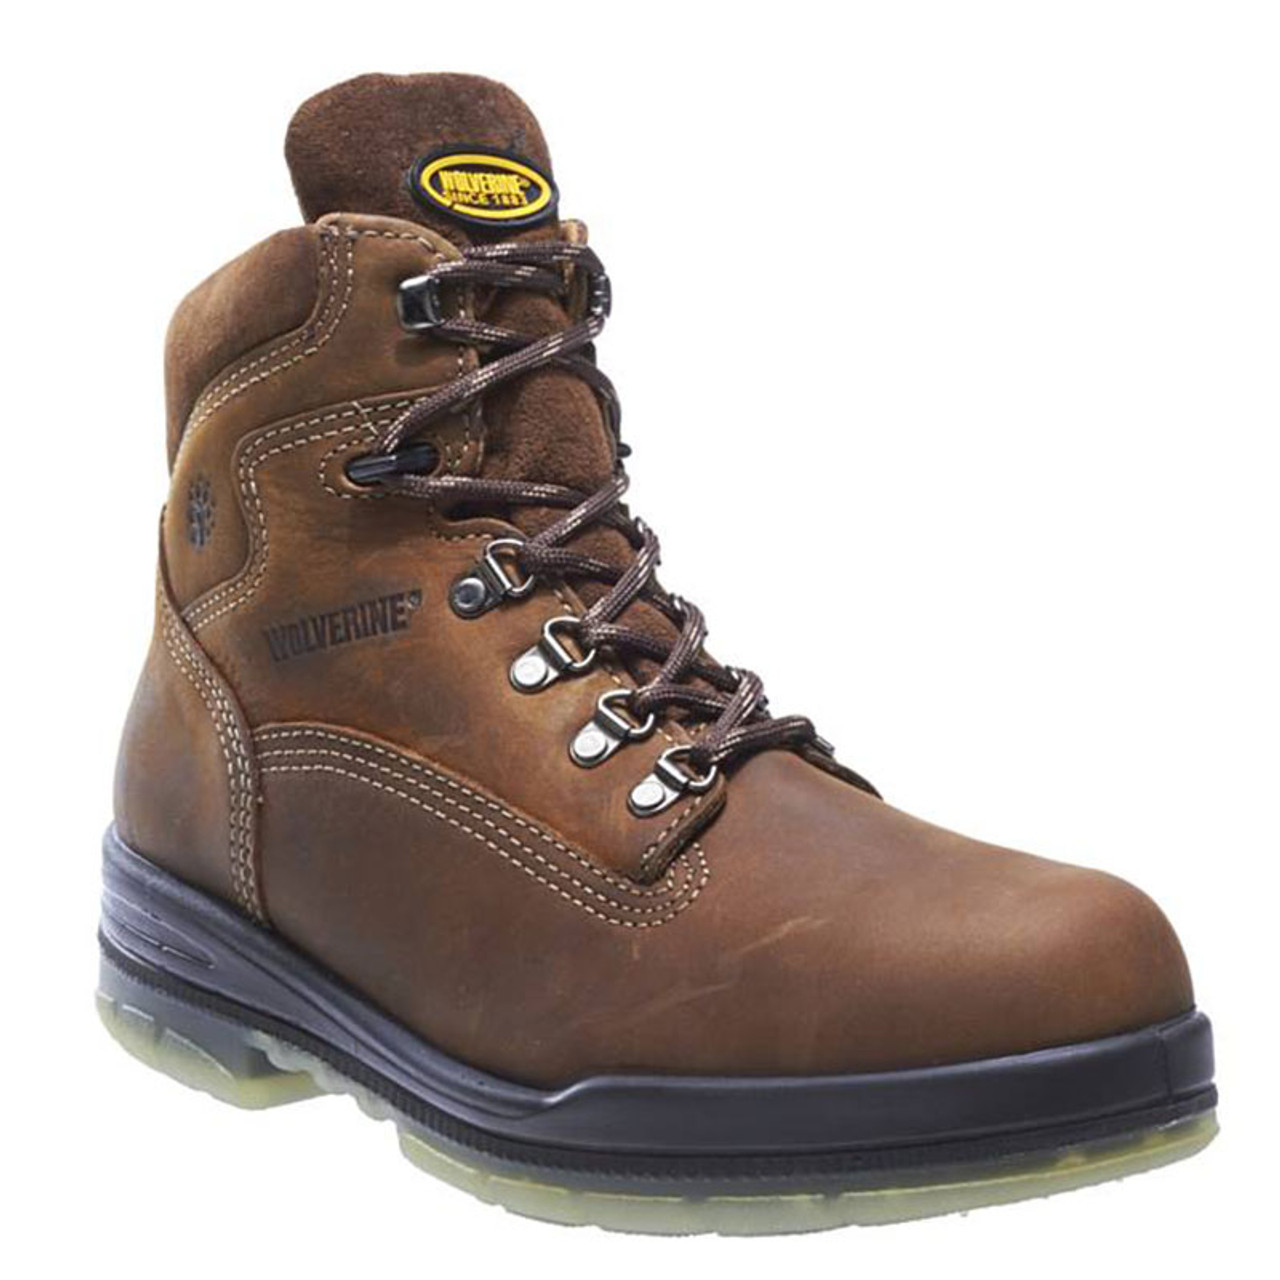 bcc5c50e512 Wolverine W03226 DURASHOCKS DIRECT ATTACH Soft Toe Insulated Work Boots